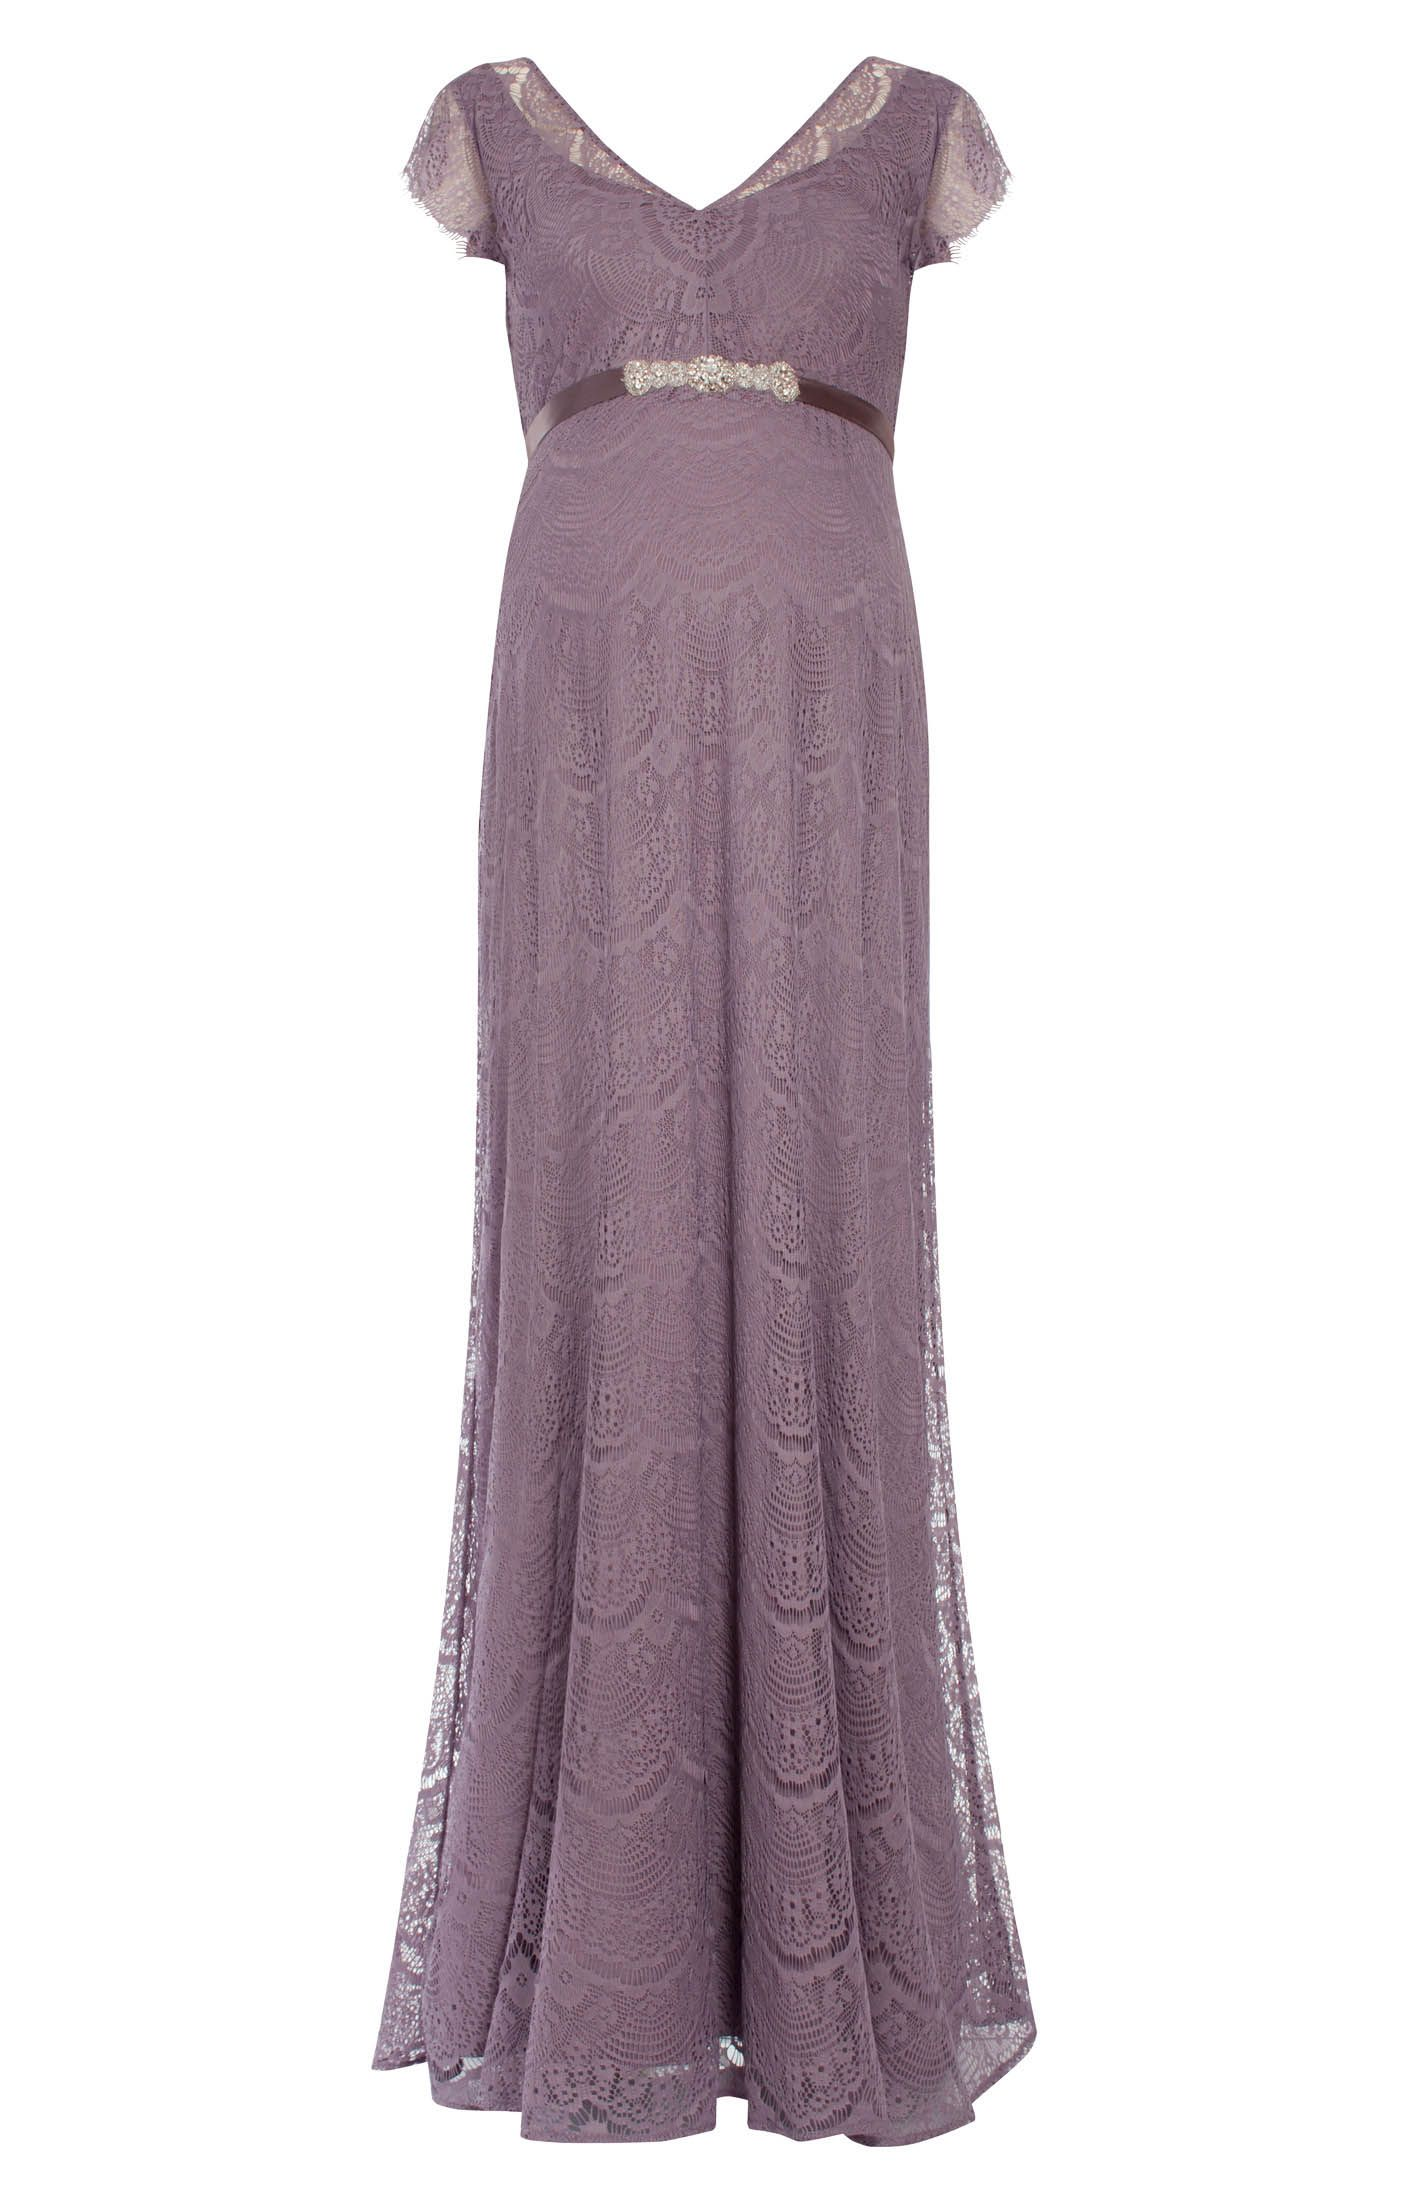 Kristin Maternity Gown Long Wisteria by Tiffany Rose   Pinterest ...